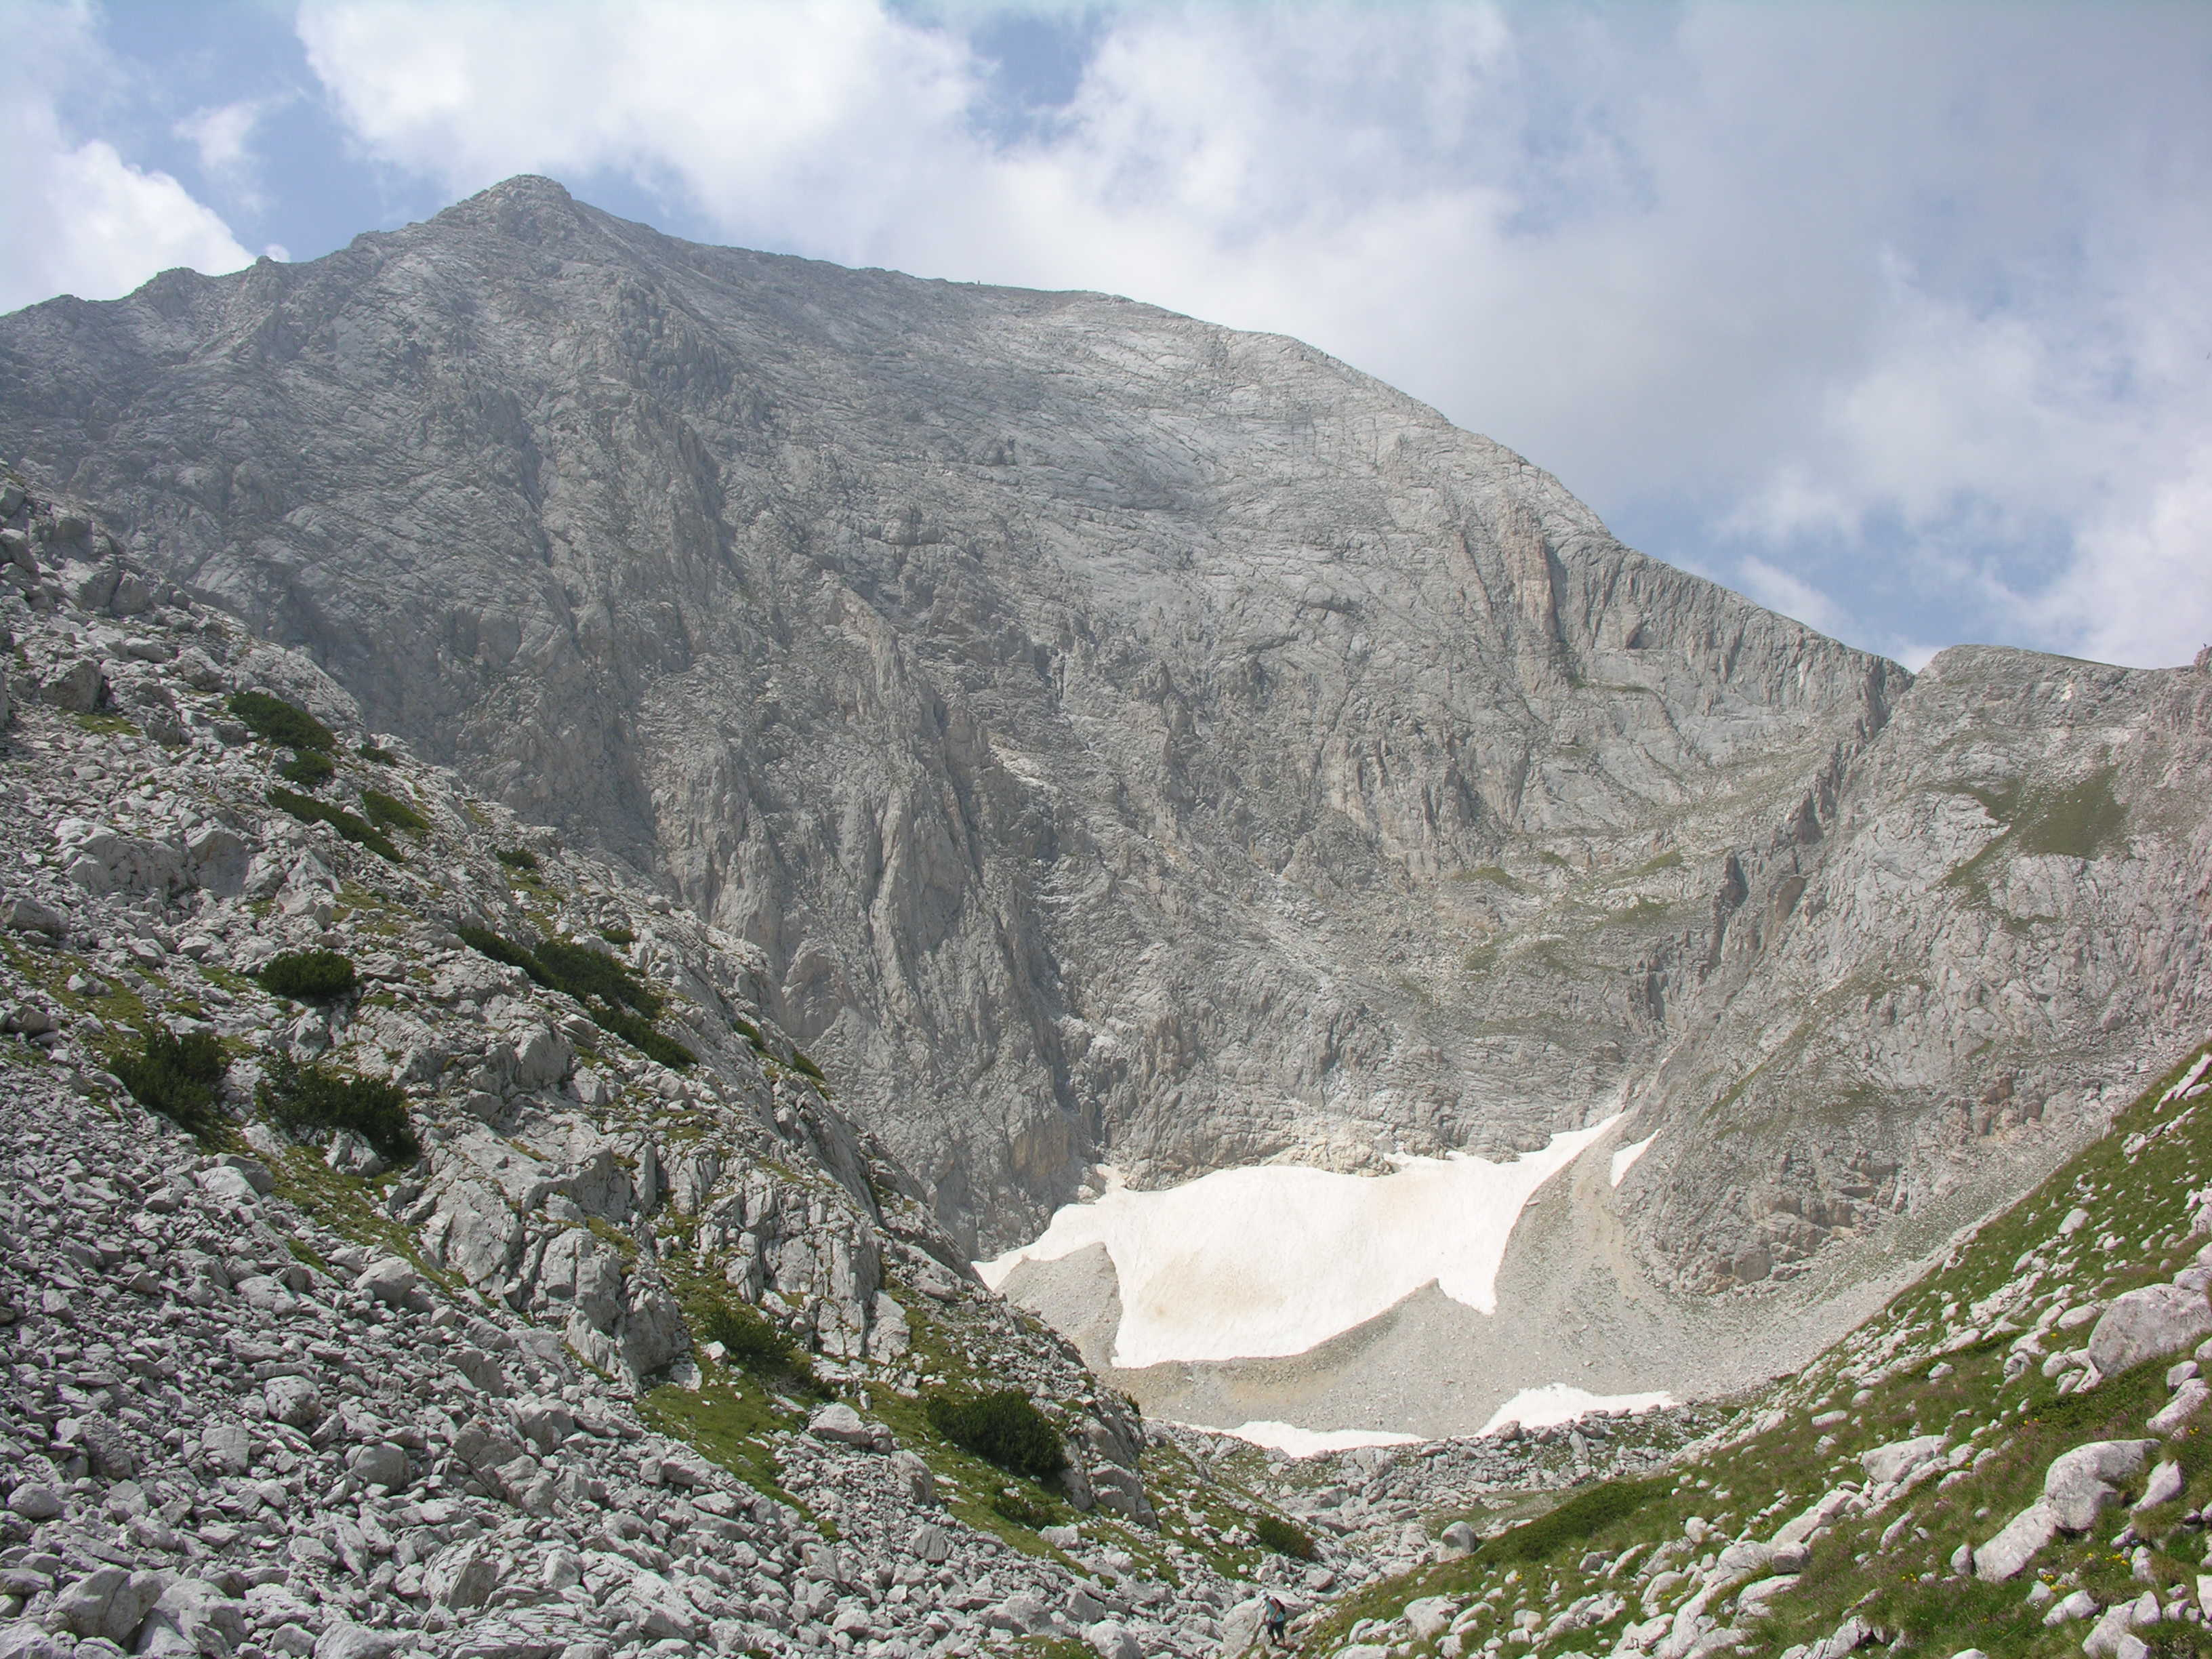 4.3.5.6. Pirin National Park1